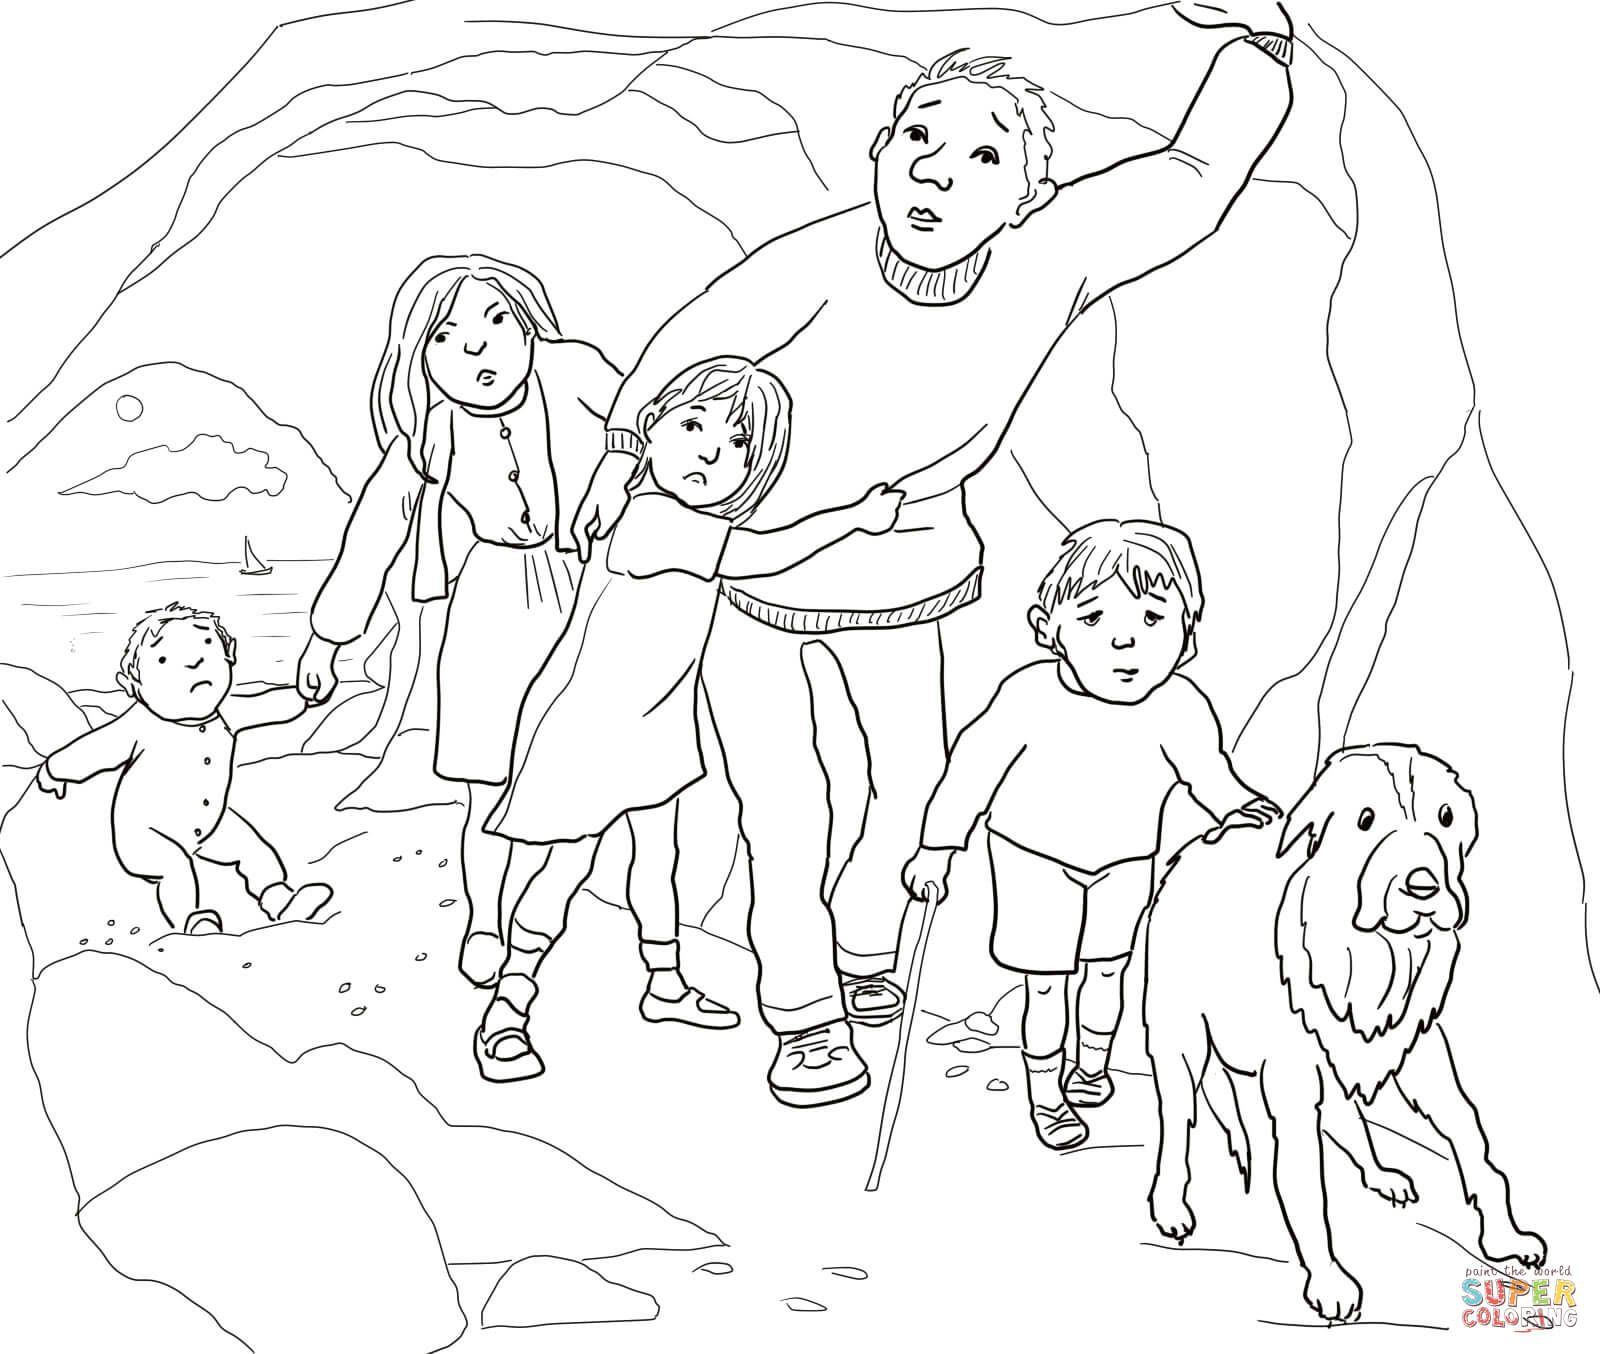 A Narrow Gloomy Cave Coloring Page Free Printable Coloring Pages